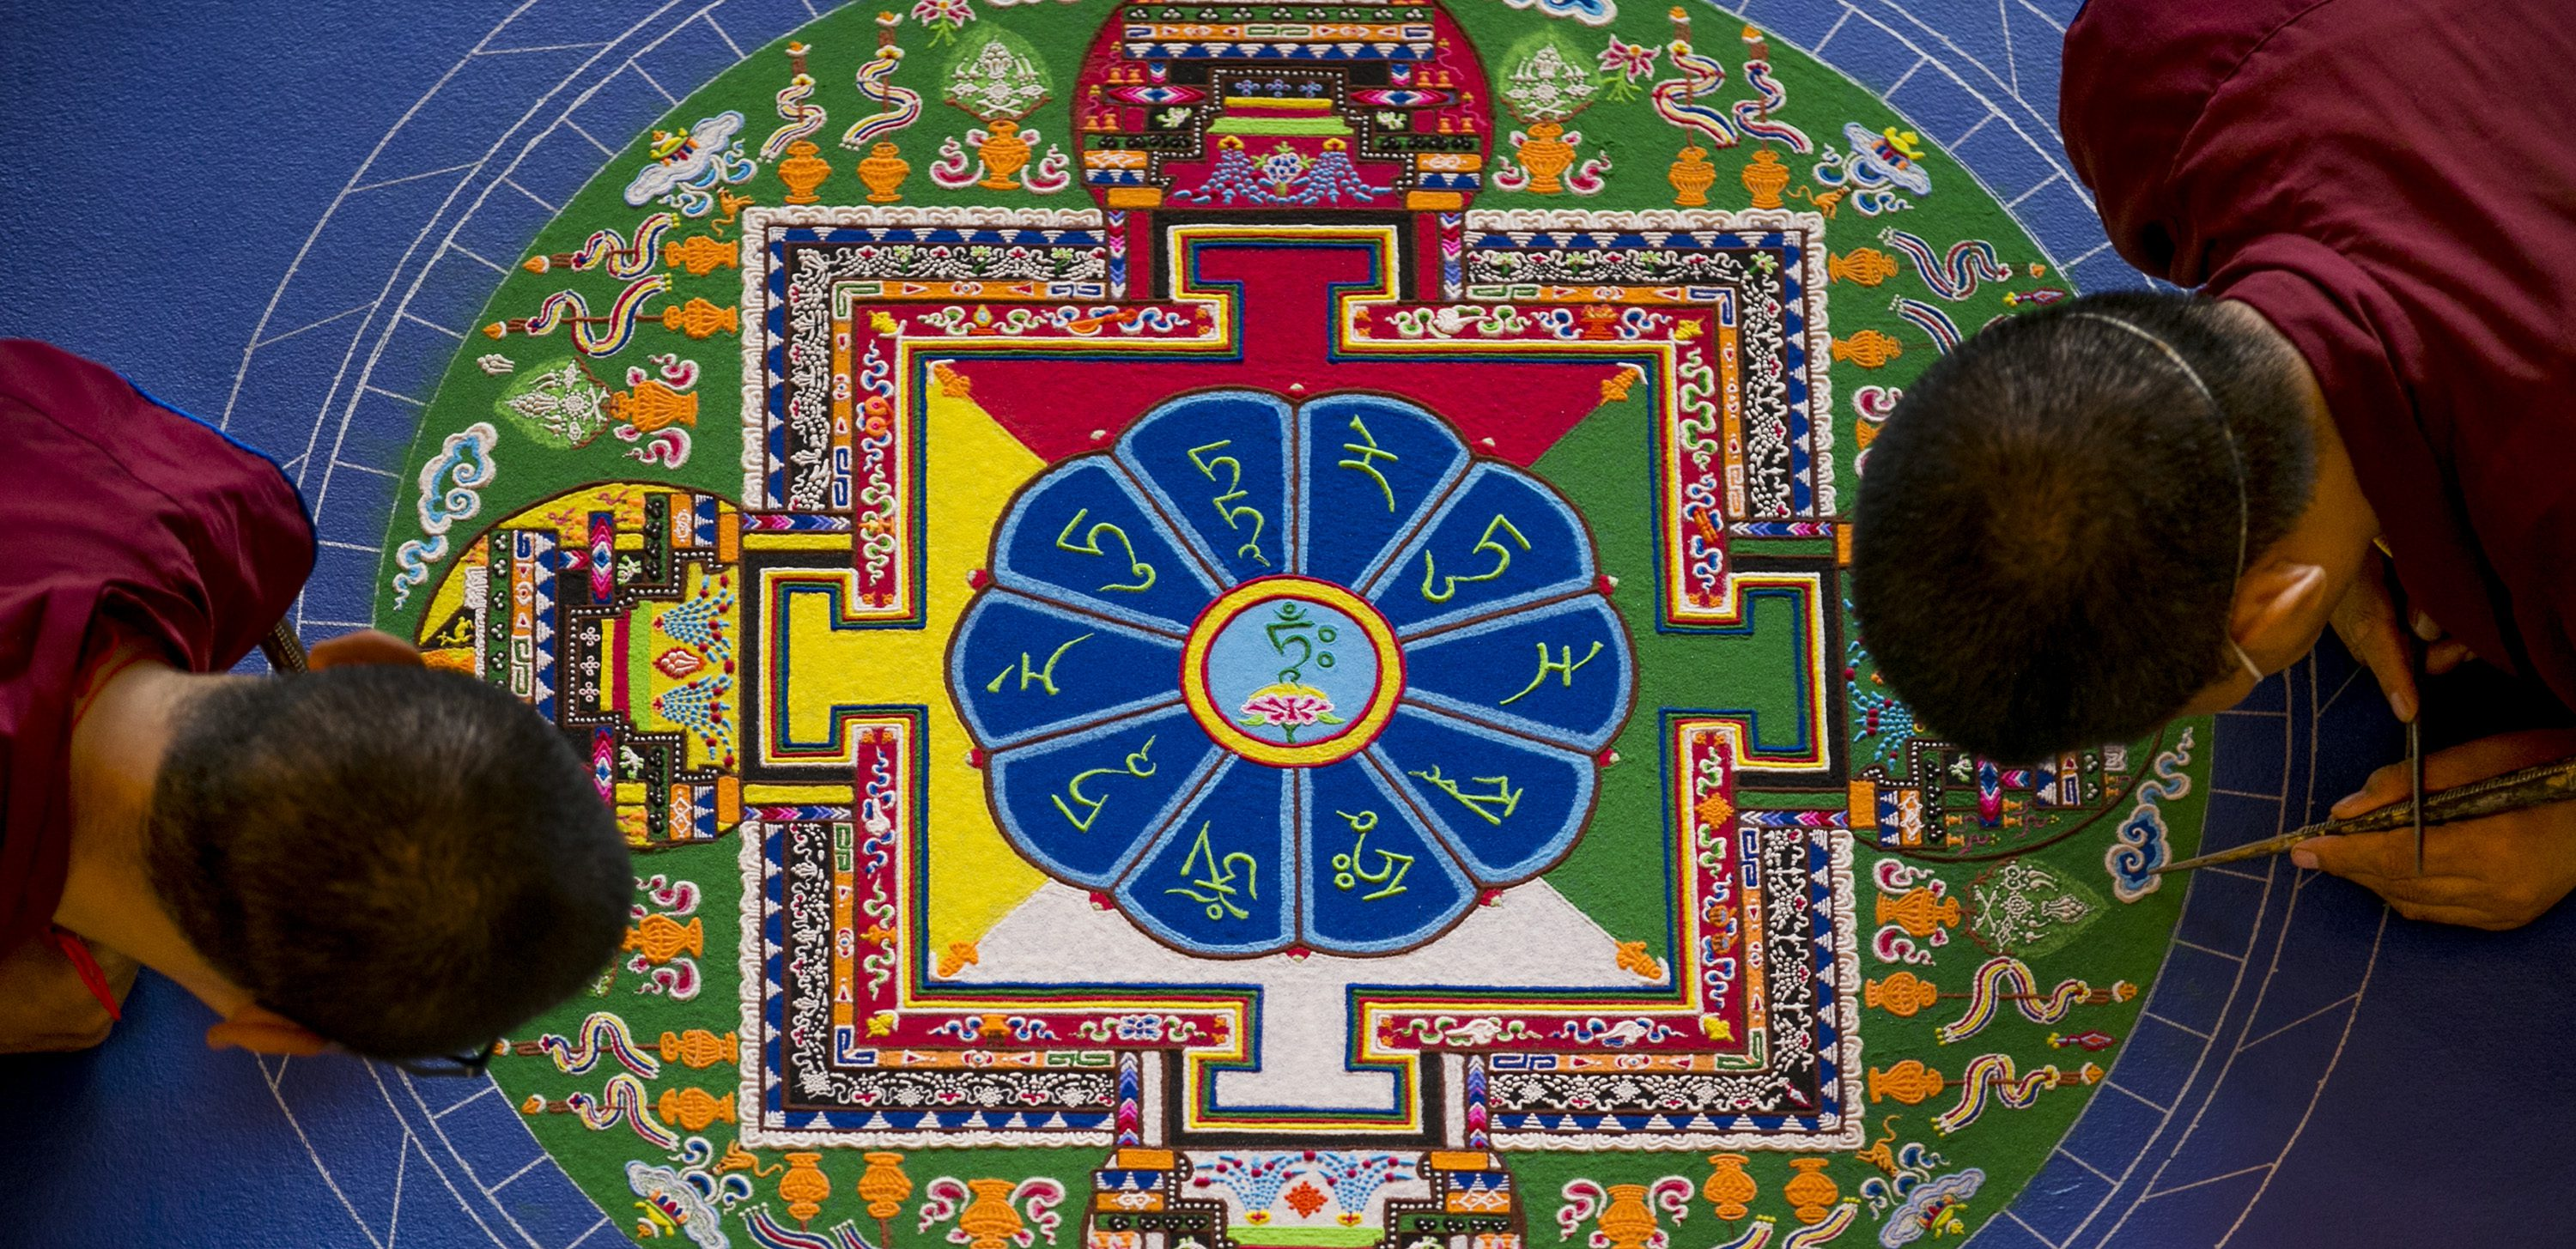 Mandalas Life – Handcrafted in the Himalayas